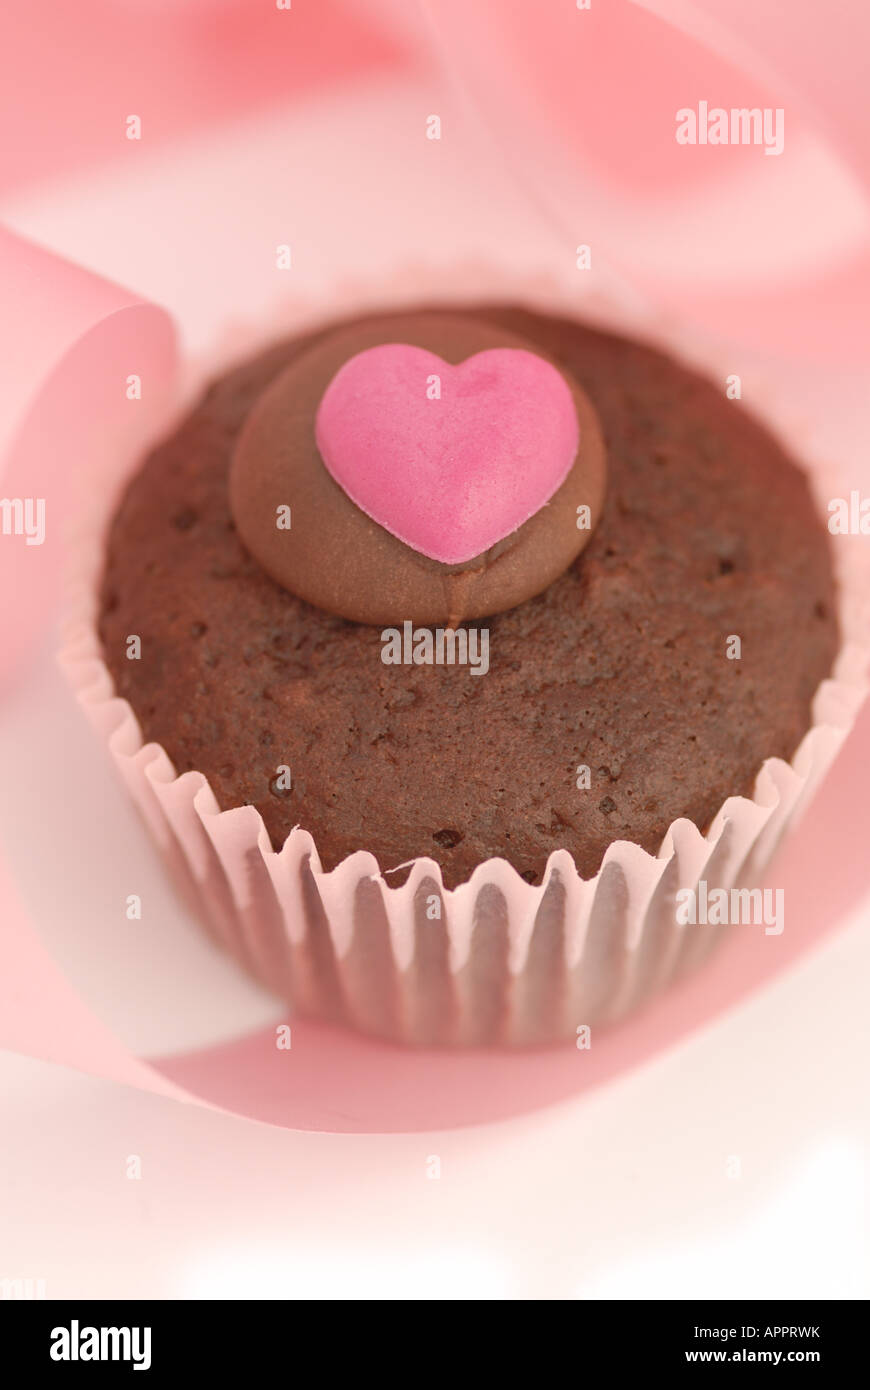 the taste of valentine - bun with heart shaped icing - Stock Image